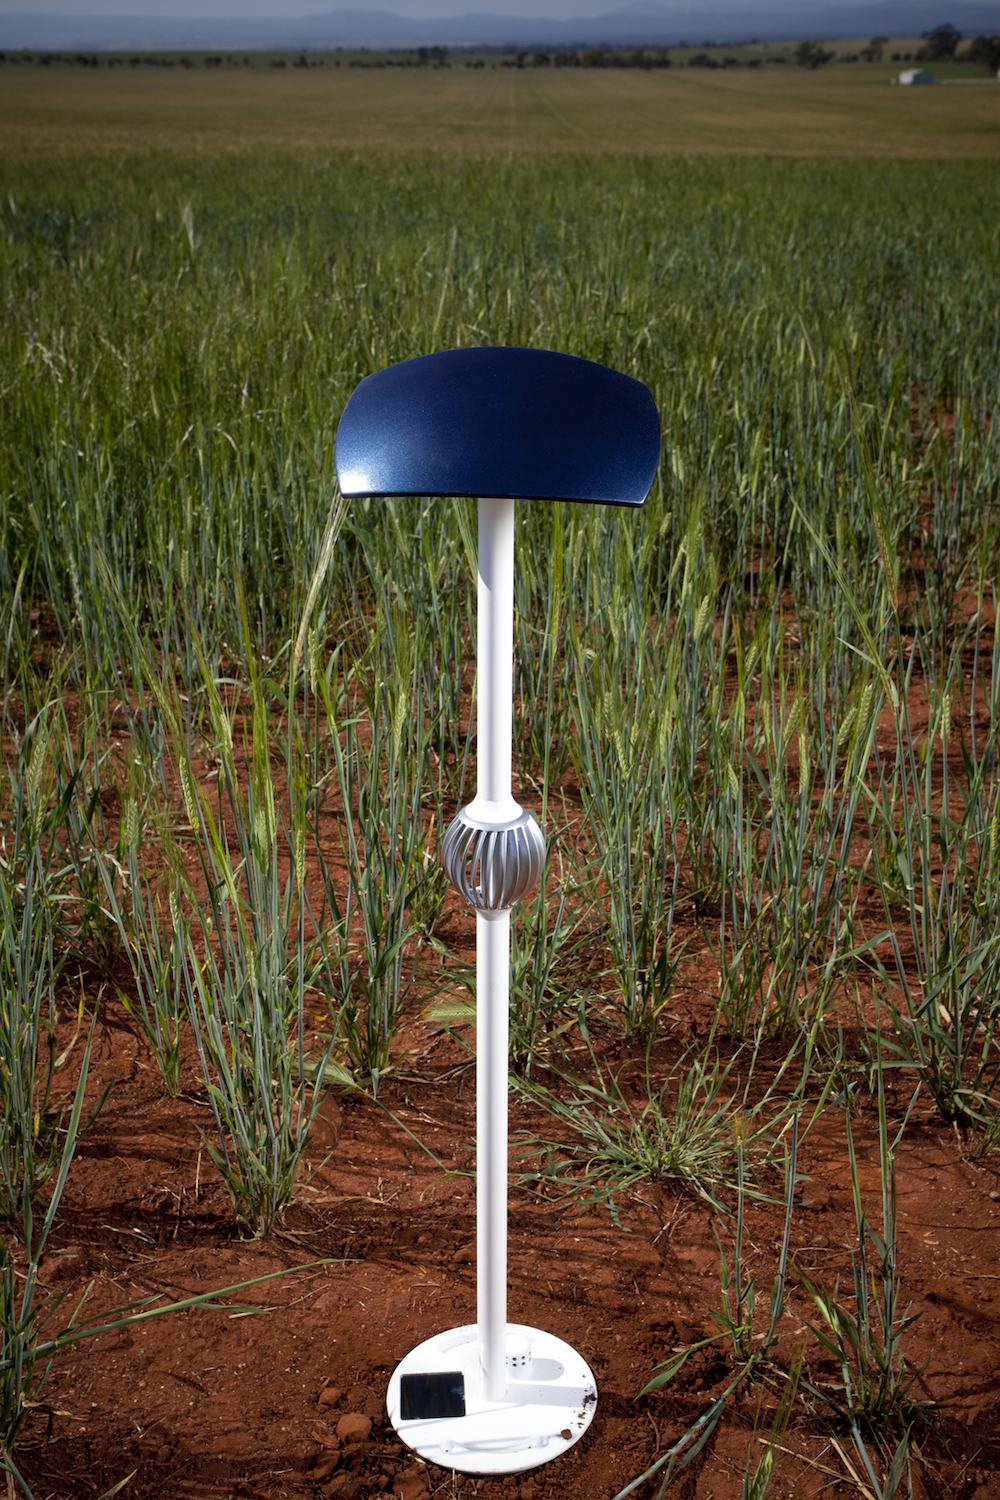 AirDrop Irrigation designed by Edward Linnacre.  Photograph by Arsineh Houspian.